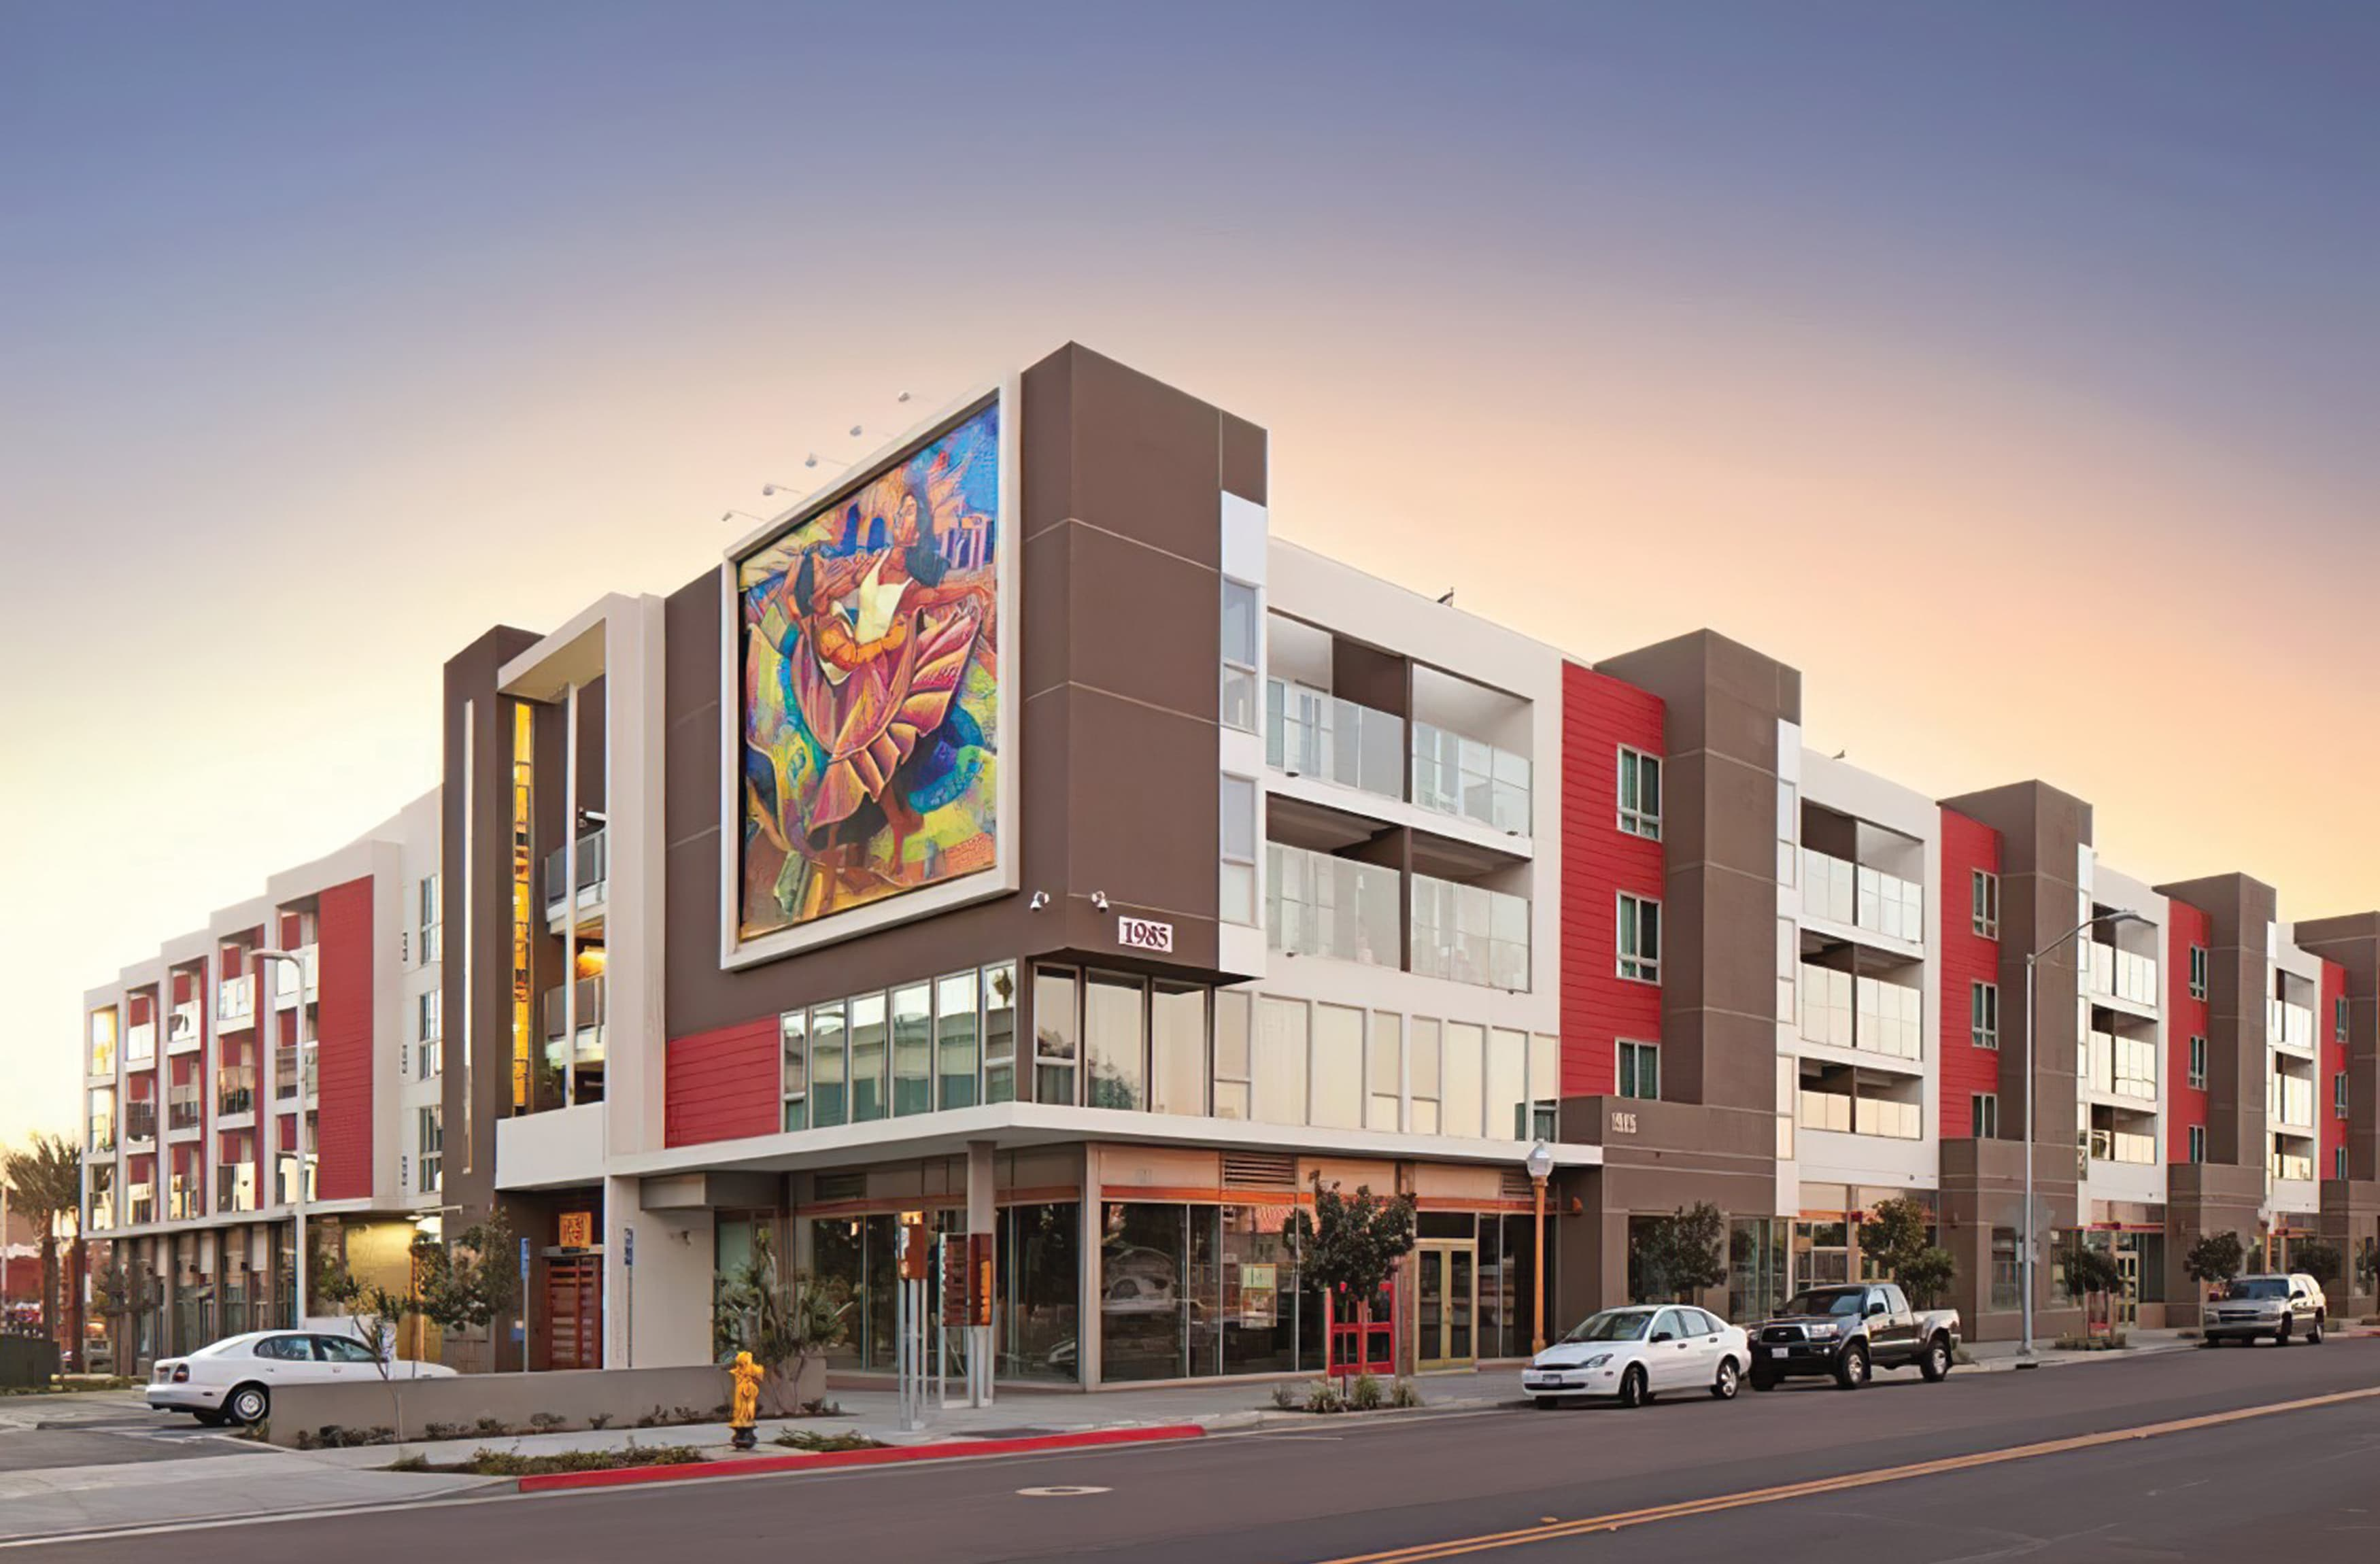 A photograph of a mixed-use residential and retail building located at Barrio Logan in San Diego, CA.